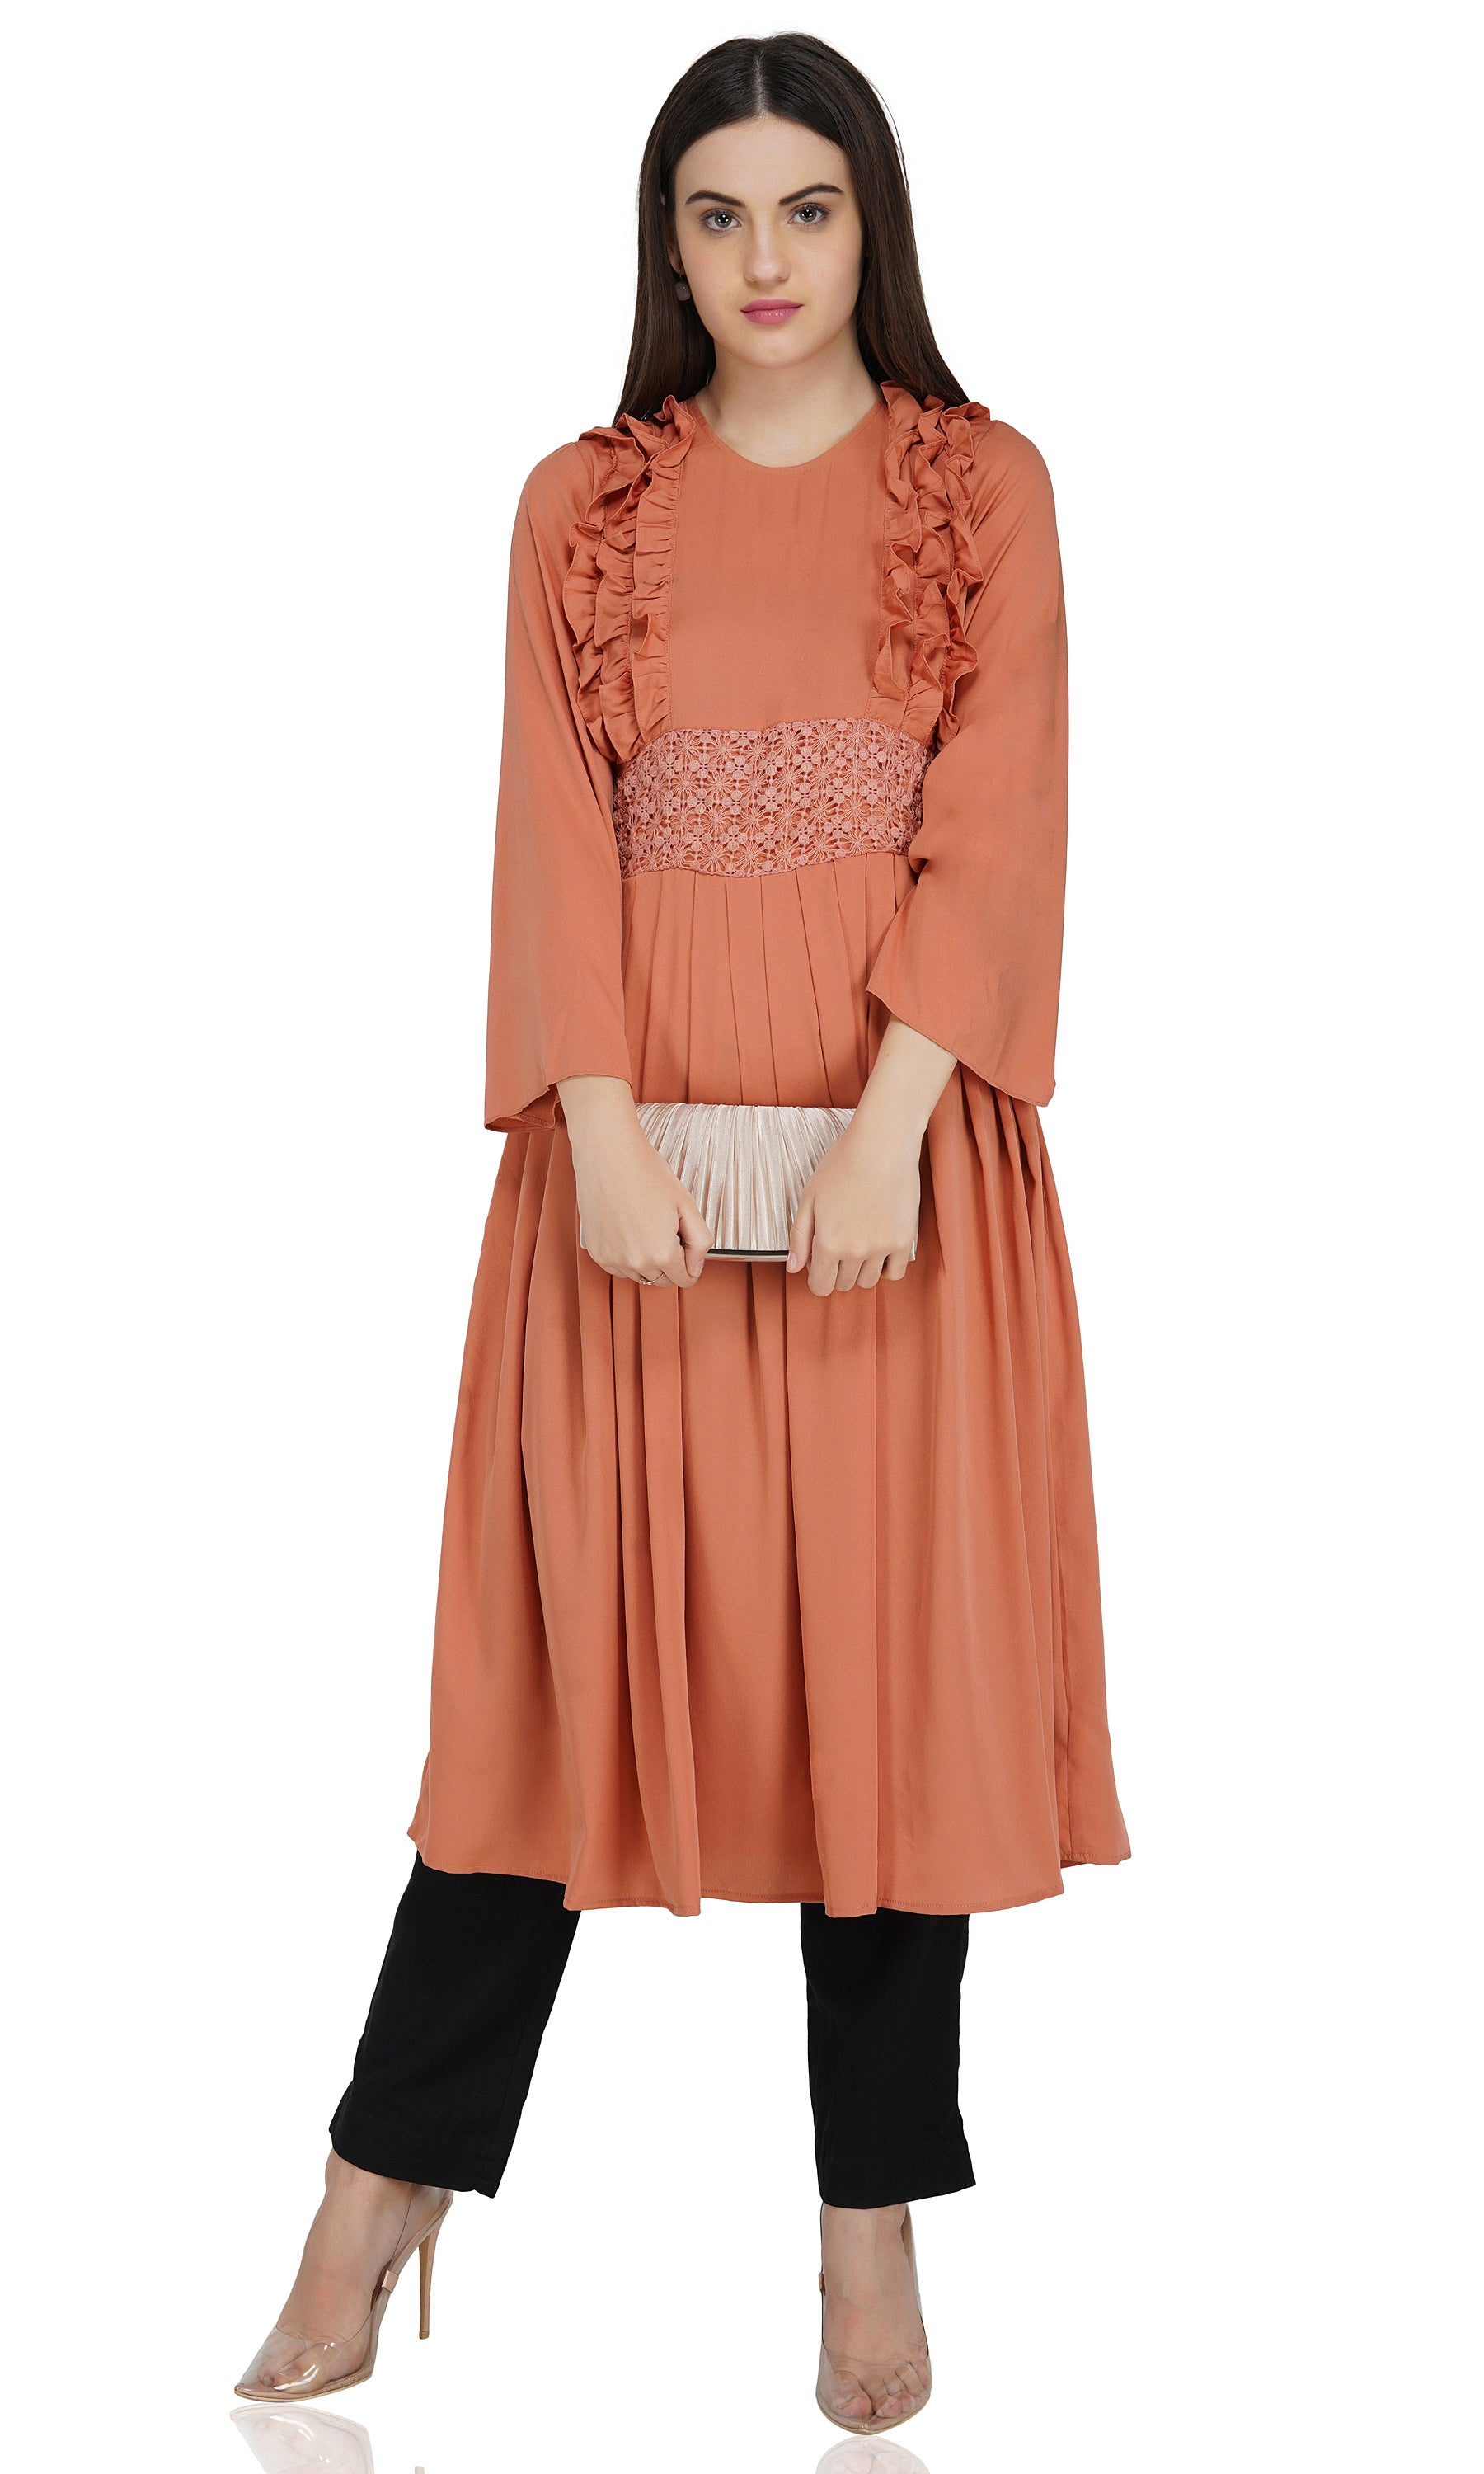 Ruqsar Pretty in Peach Dress and Bubble Black Headscarf Combo